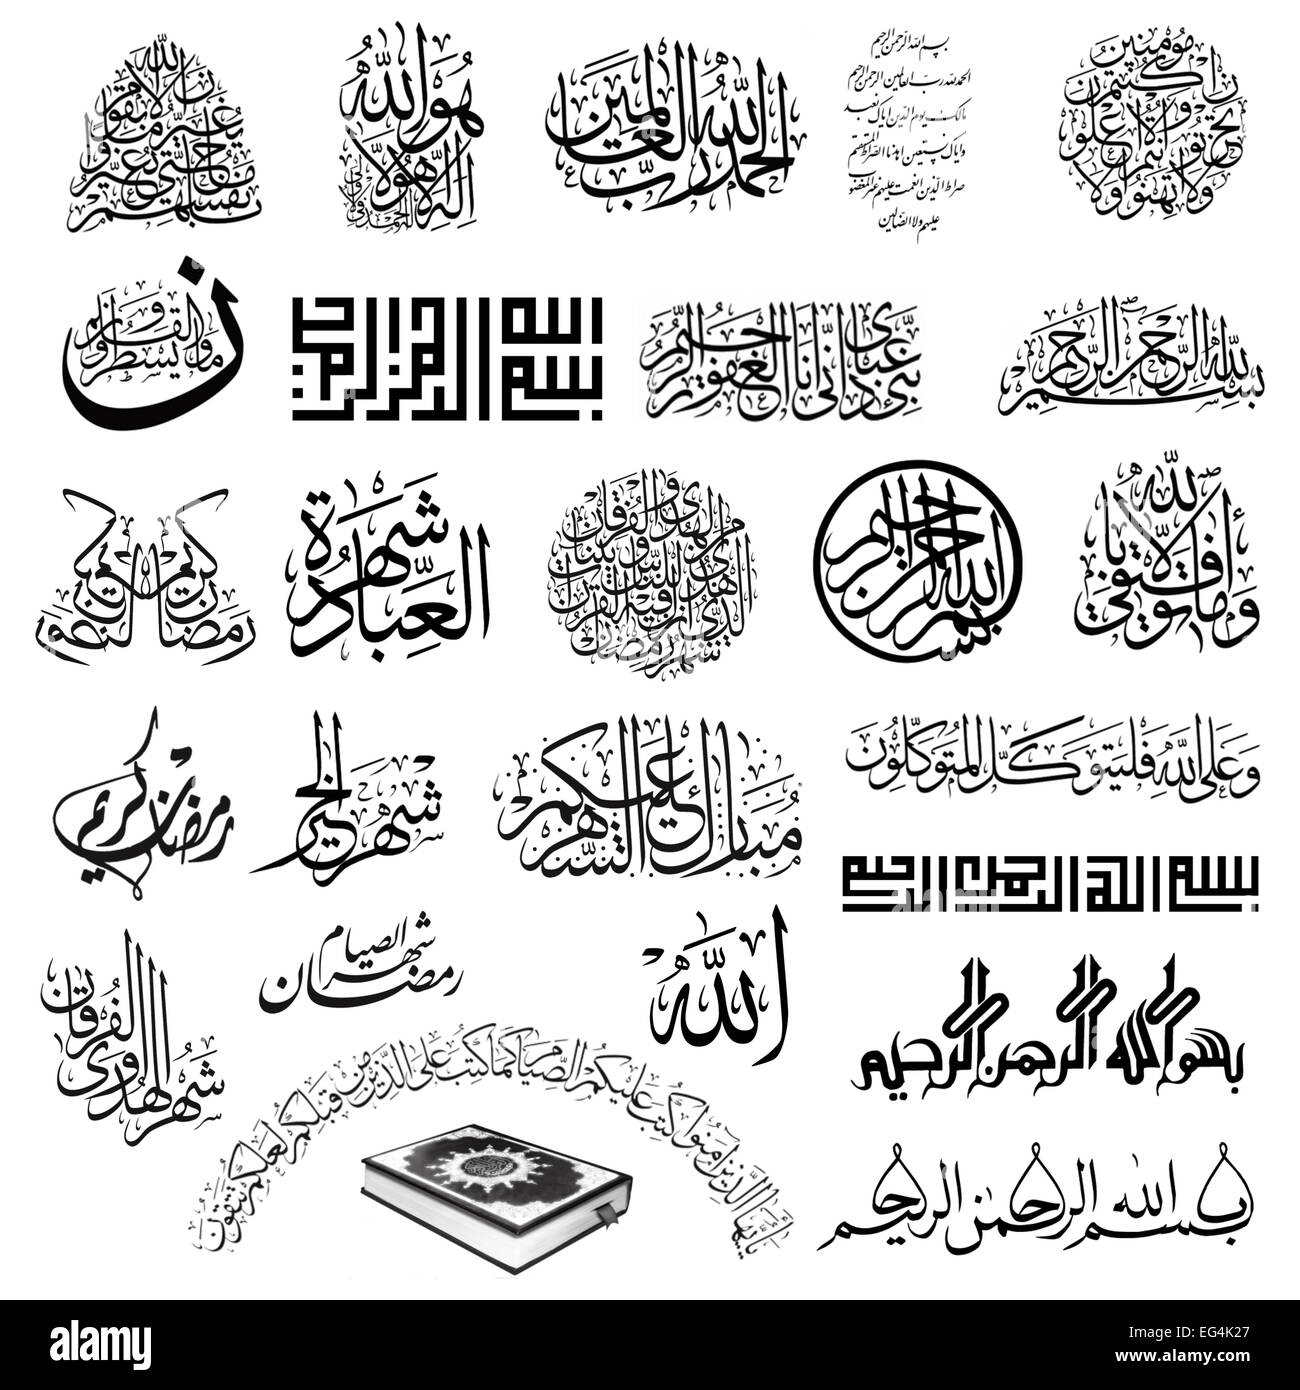 Calligraphie Arabe Clavier Arabic Alphabet Photos Arabic Alphabet Images Alamy